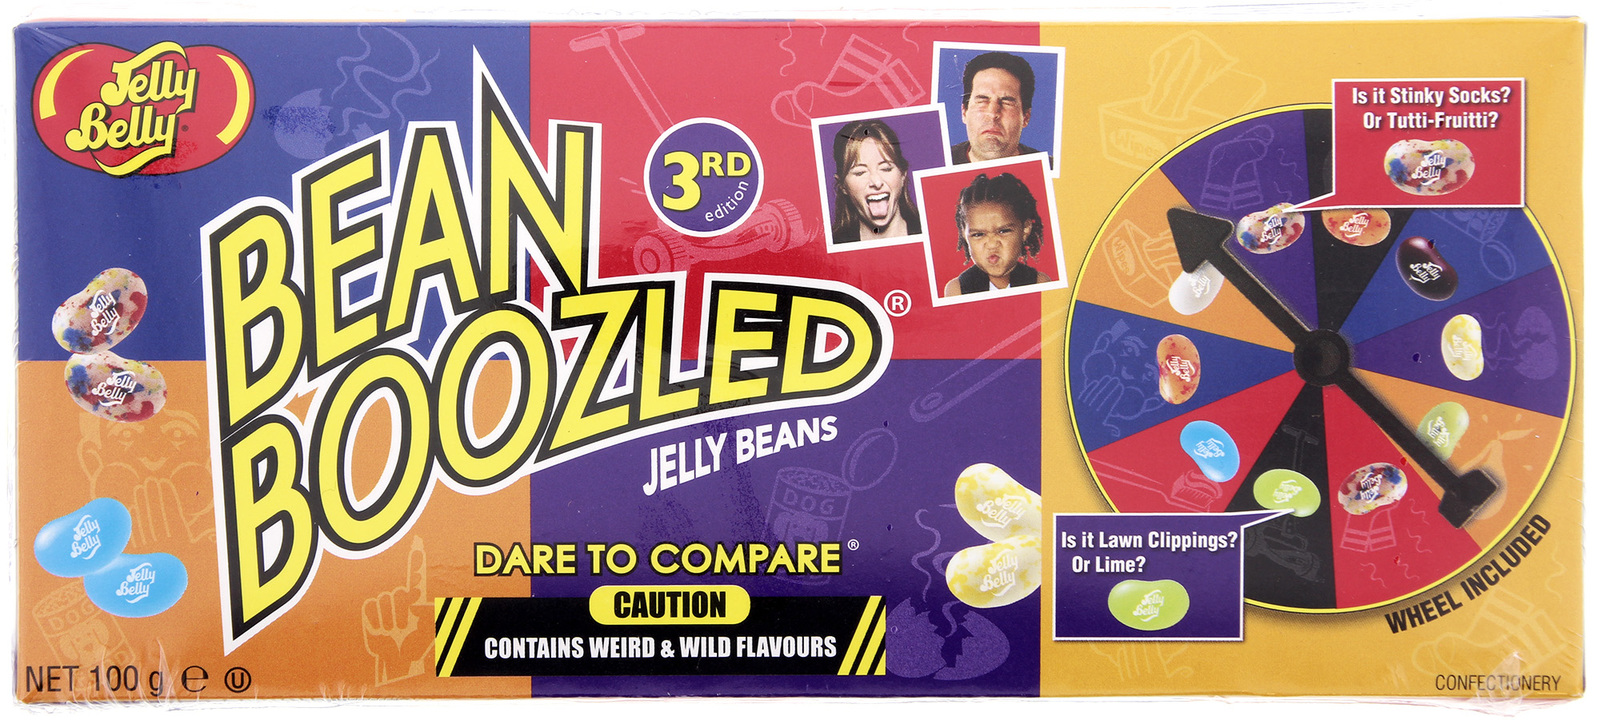 Jelly Belly Bean Boozled Spinner Game Box 99g image